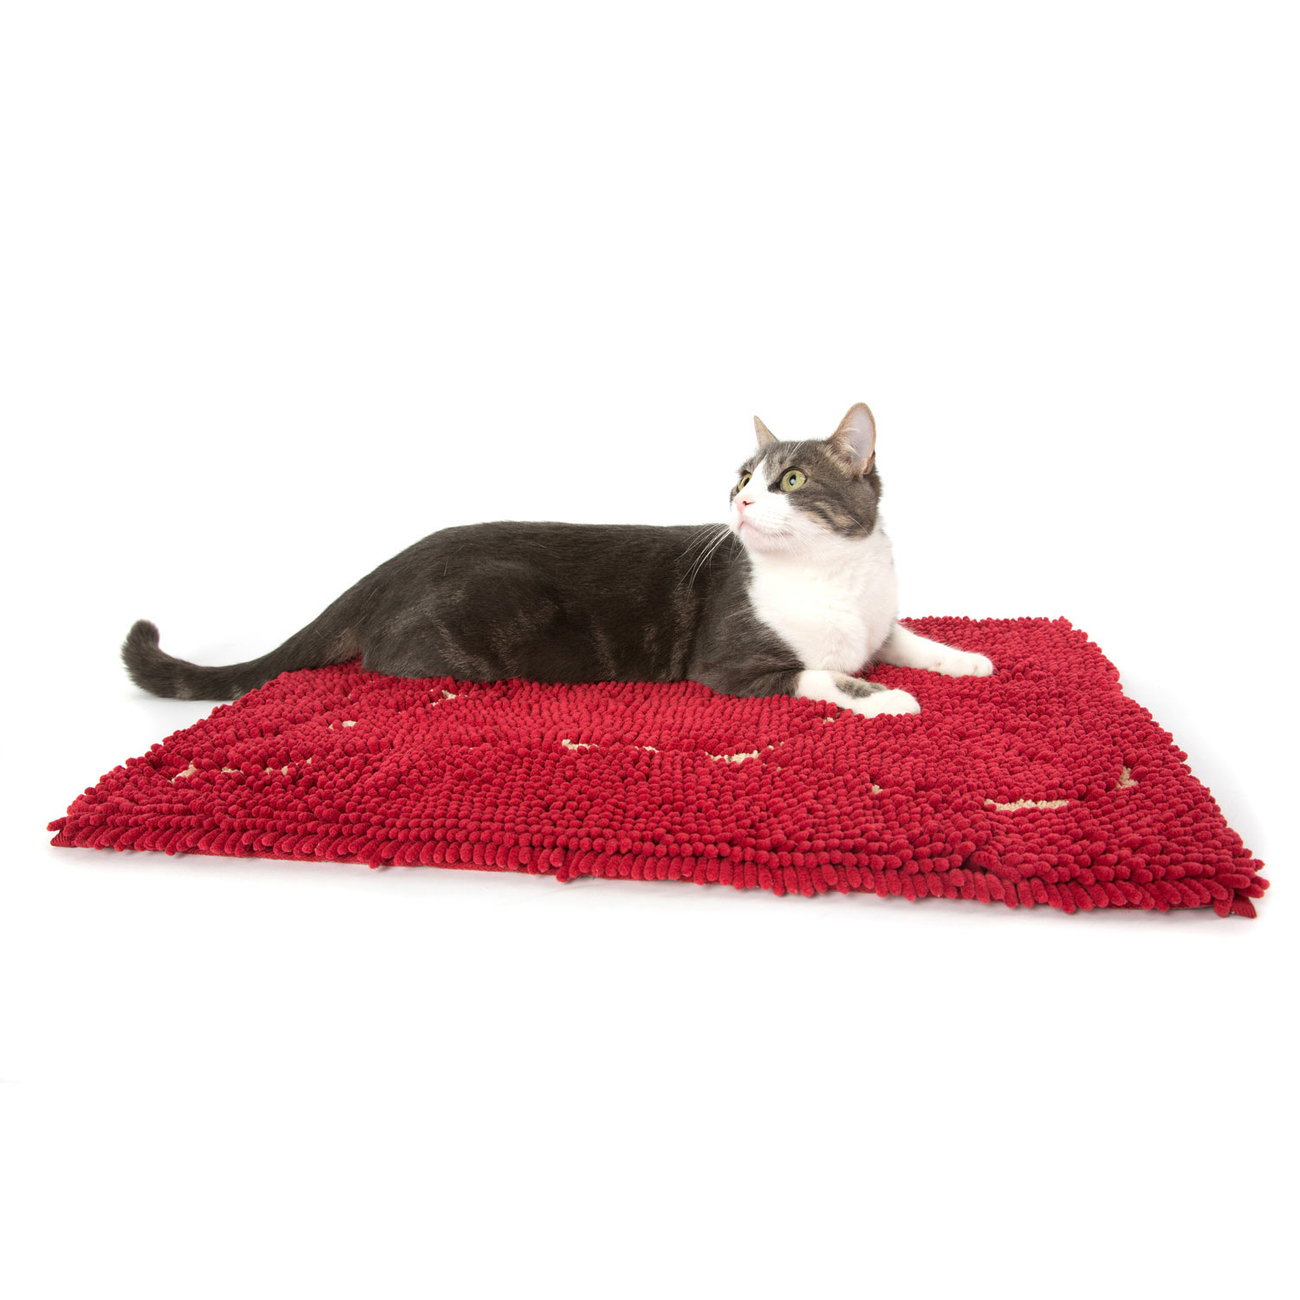 Dog Gone Smart Cat Litter Mat Katzenmatte, Bild 4